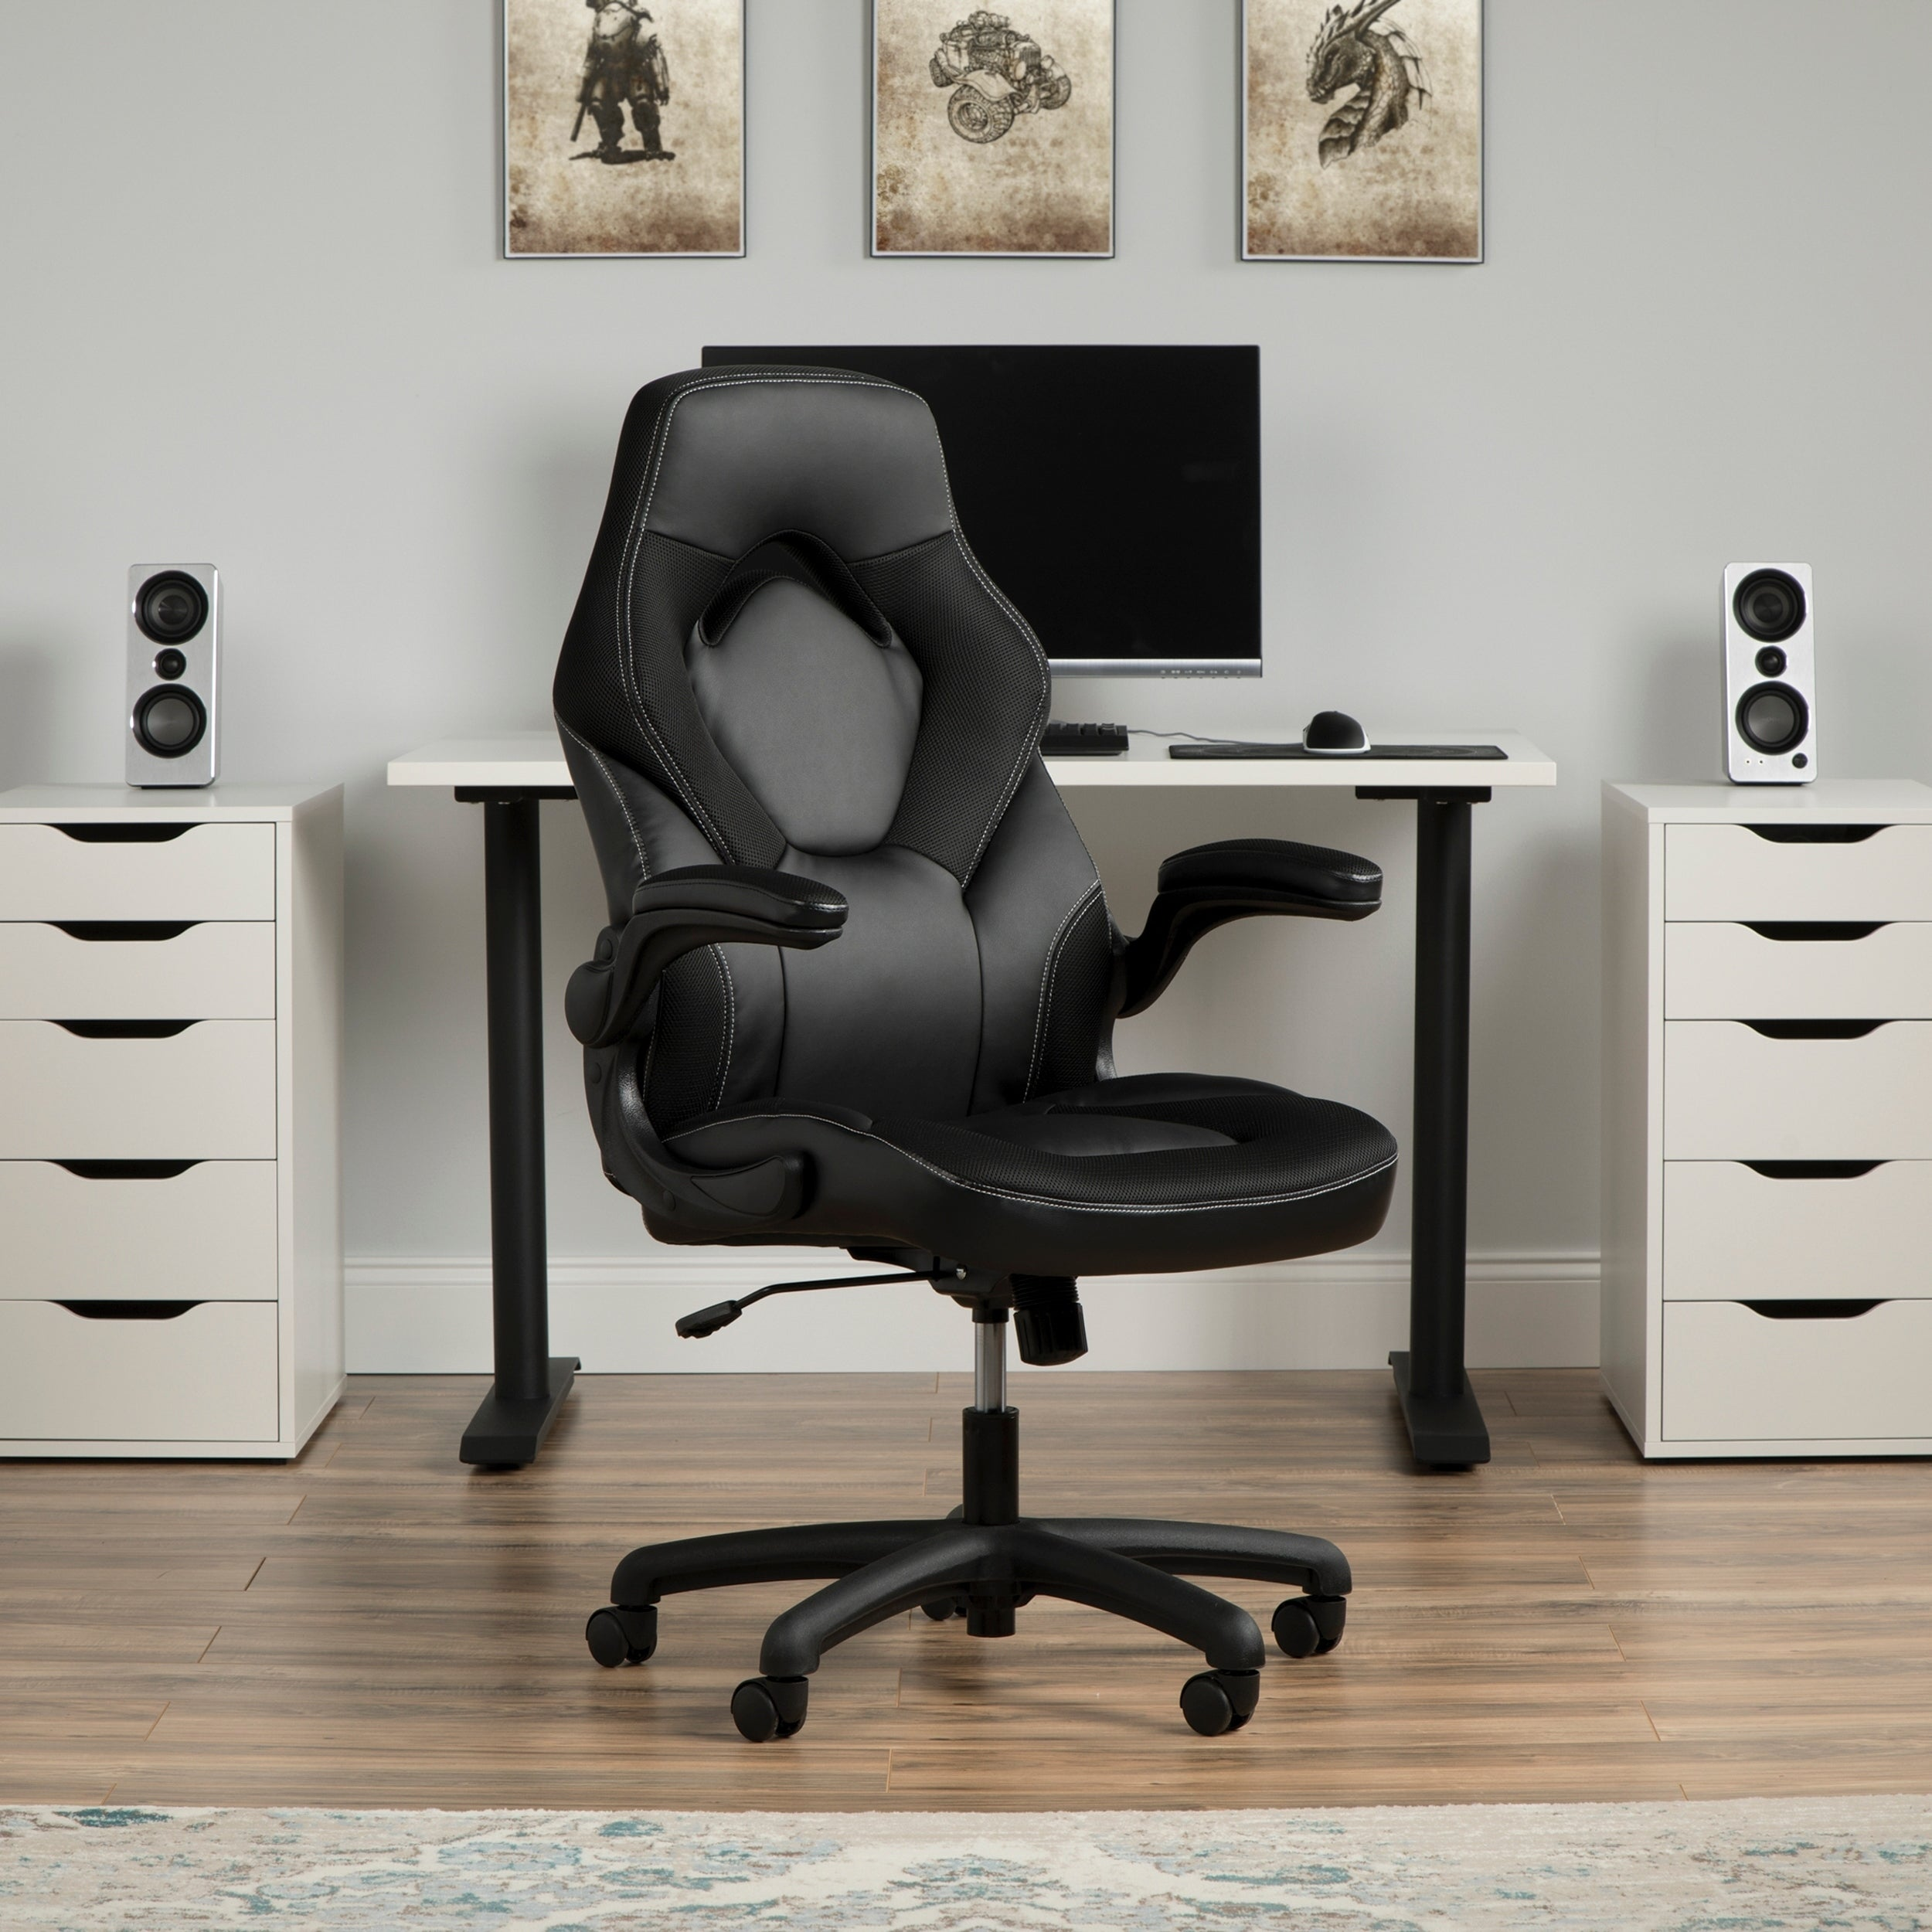 Ofm Essentials Collection Racing Style Bonded Leather Gaming Chair Ess 3085 On Sale Overstock 25640082